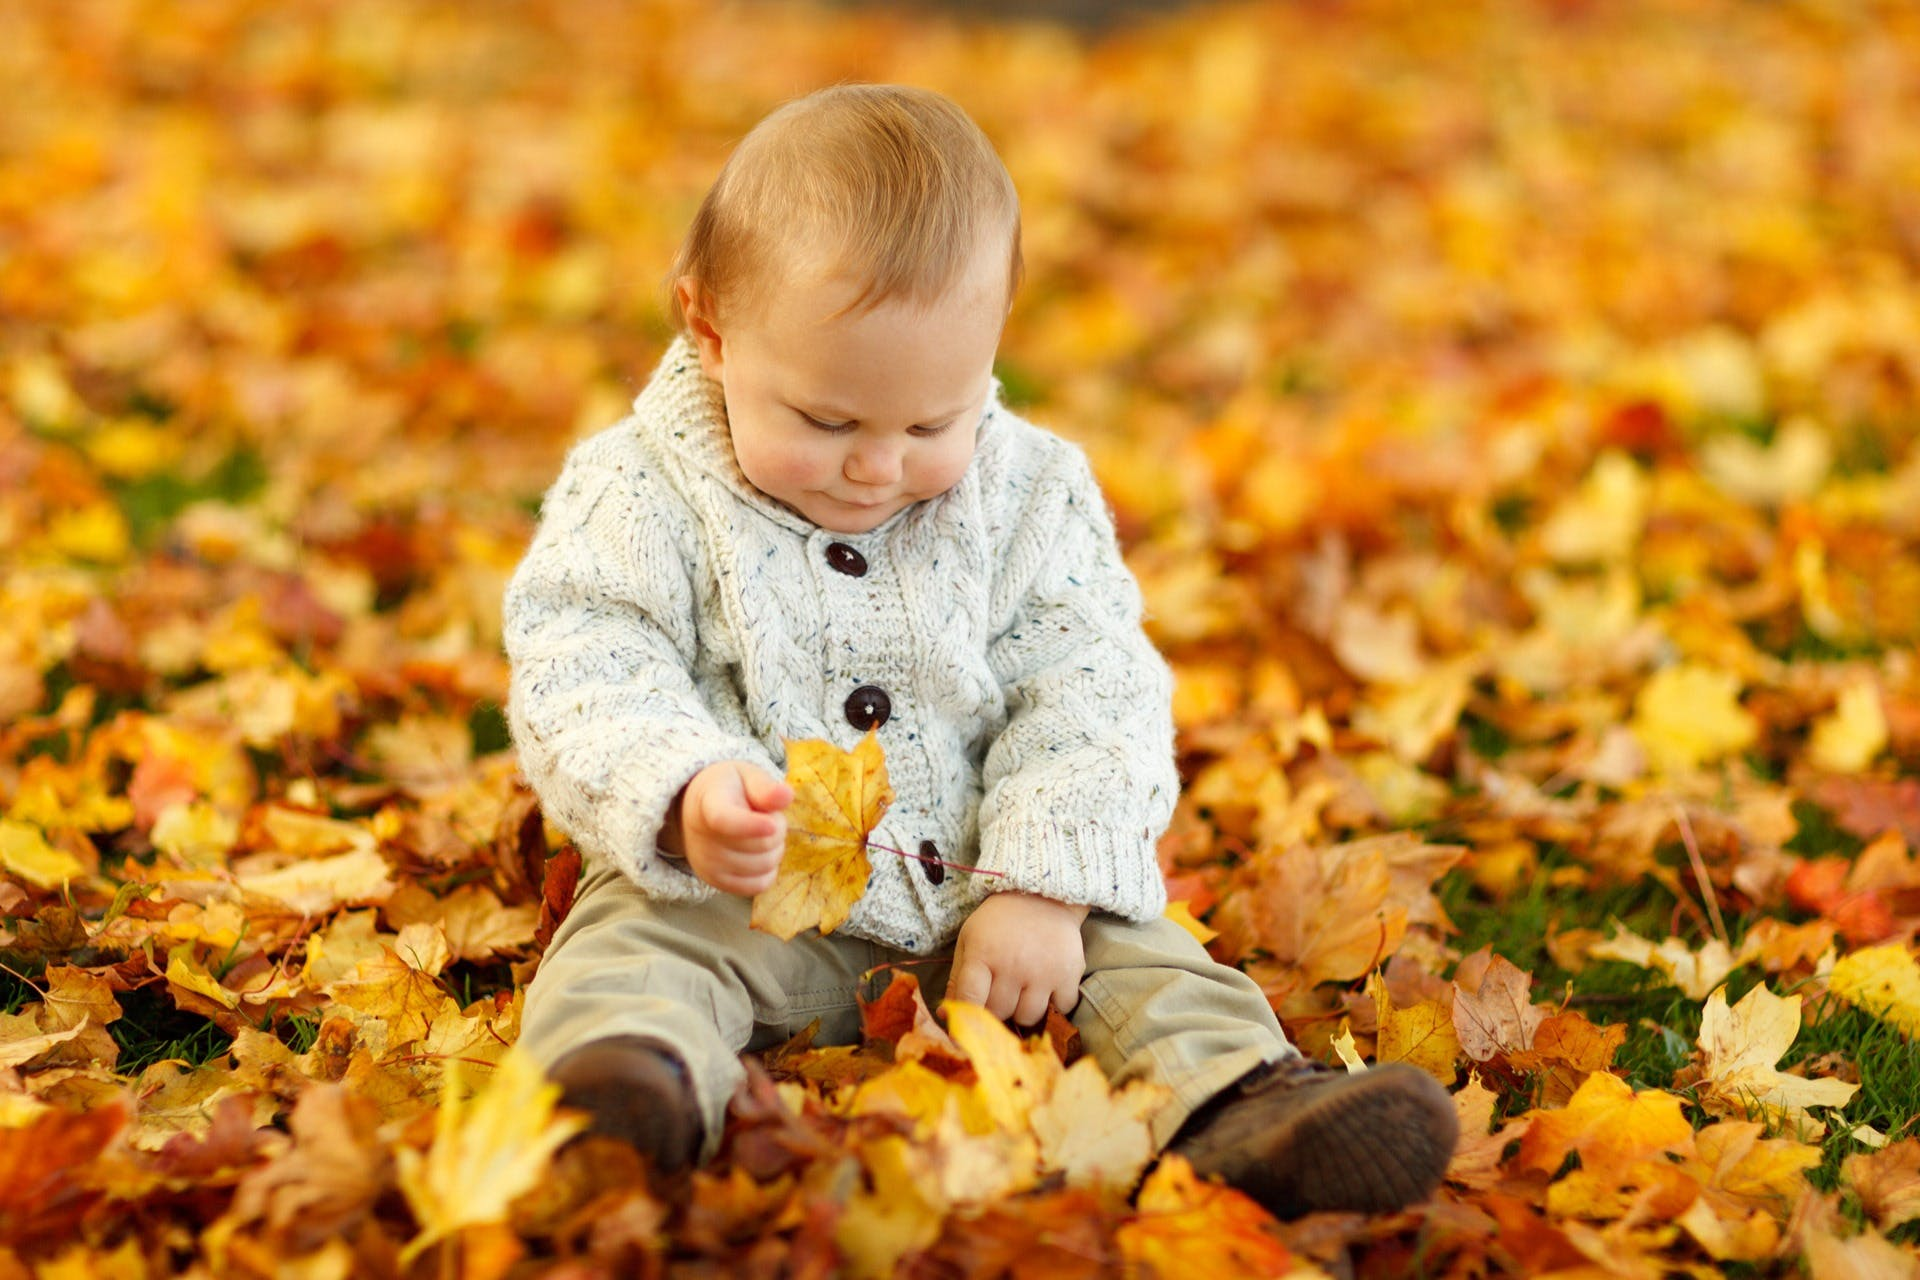 Display Autumn Fall Baby Boy Child